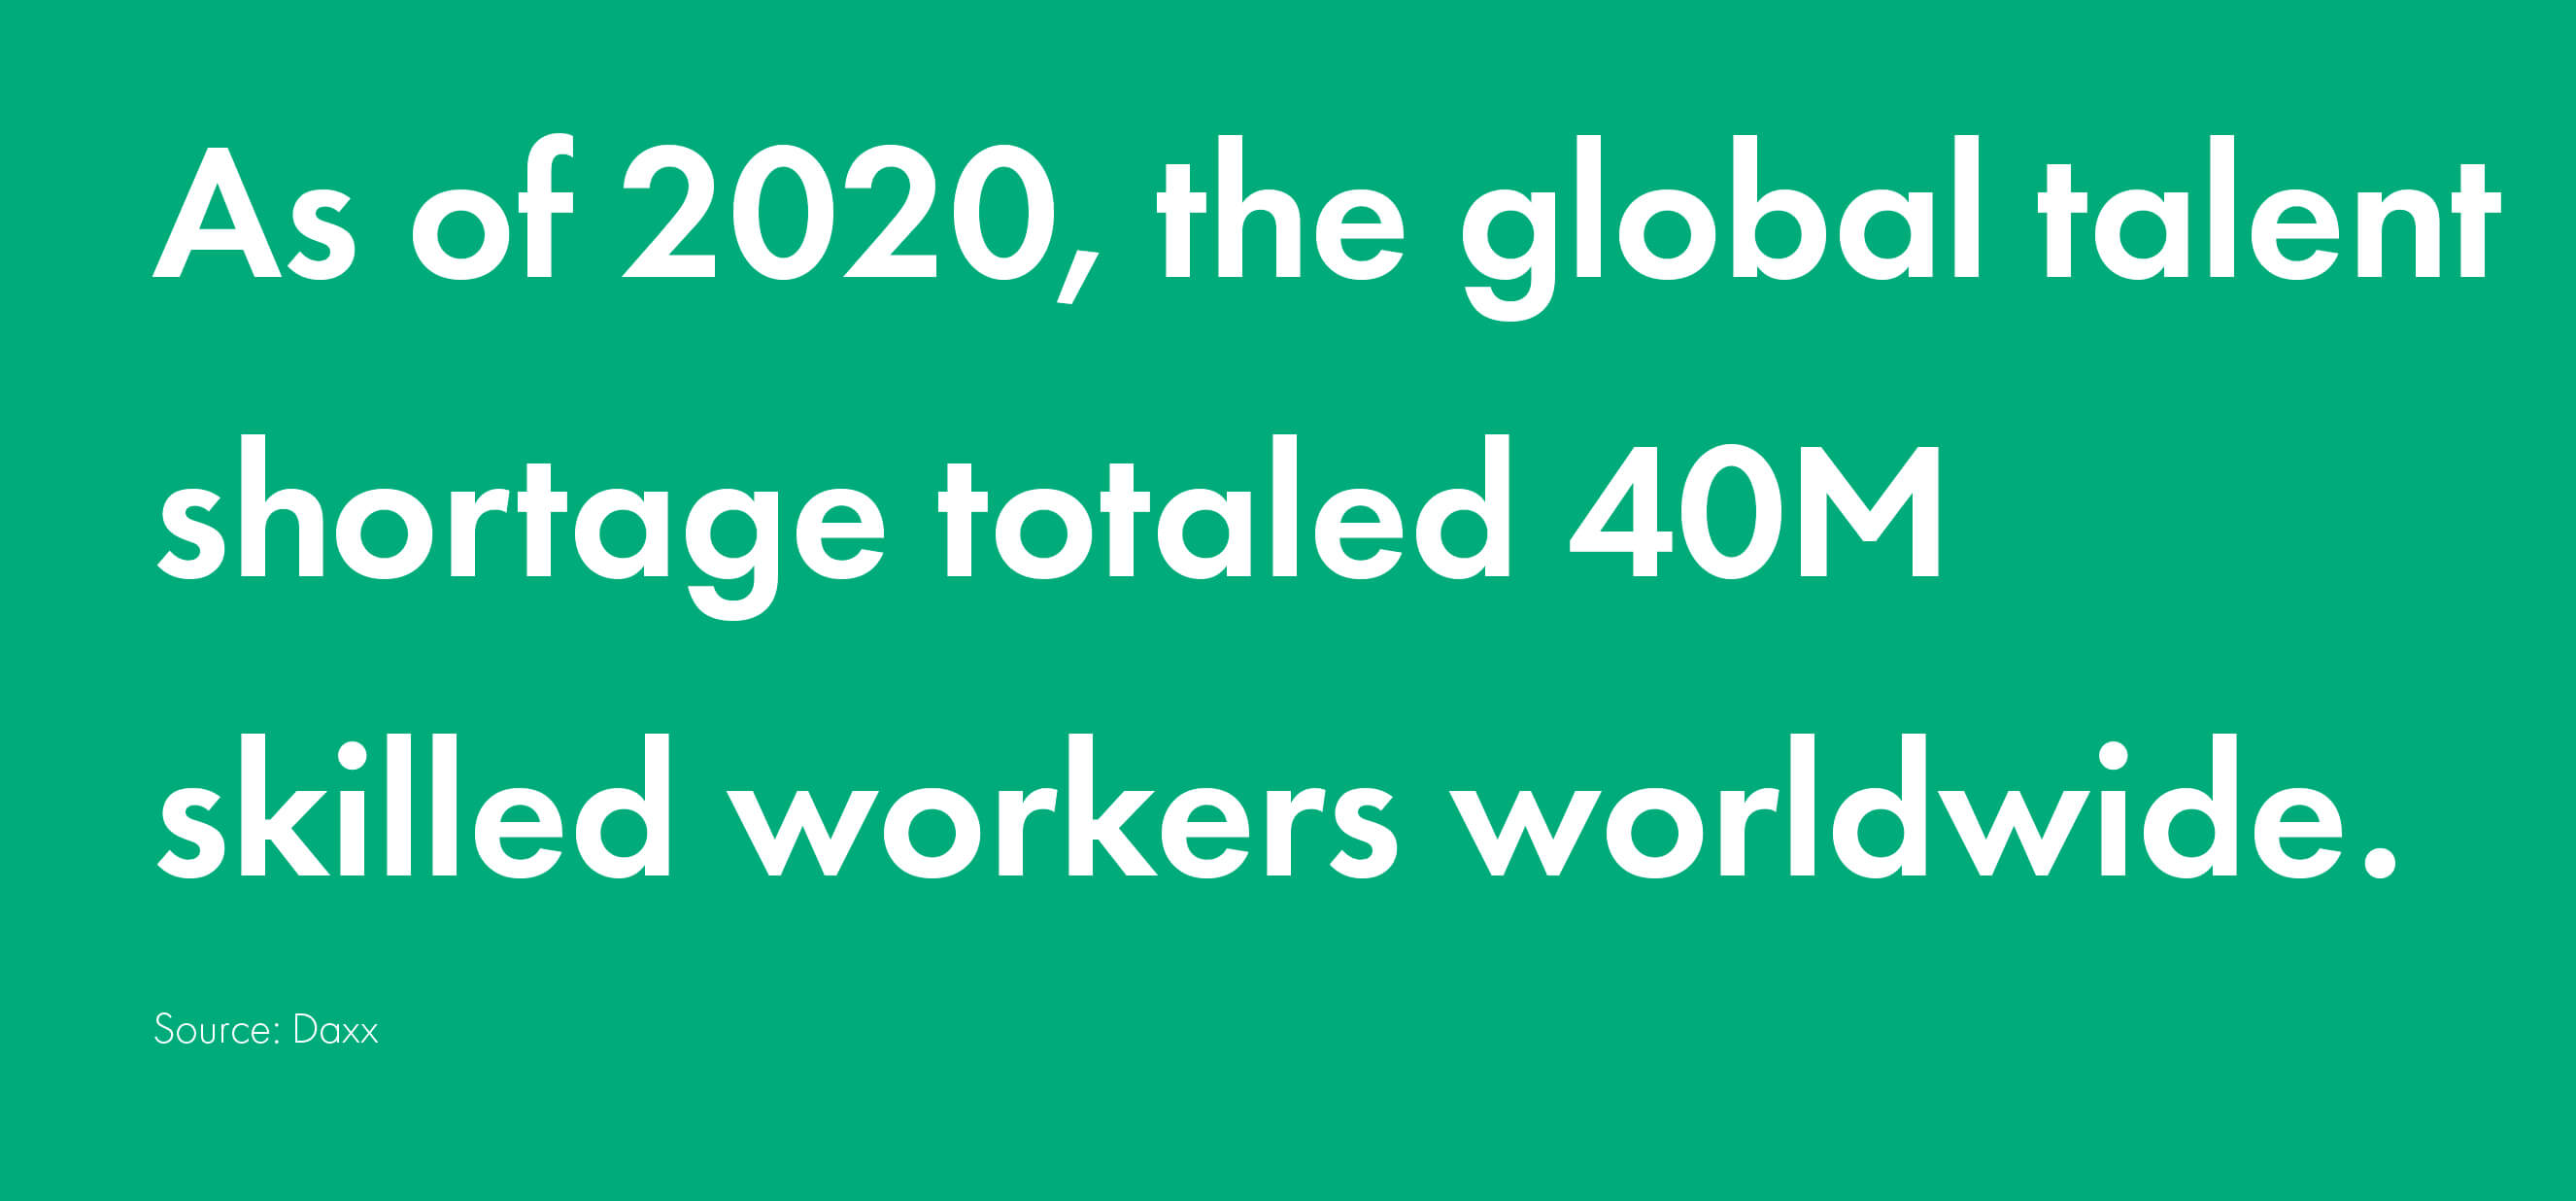 Recent stats about global talent shortage.